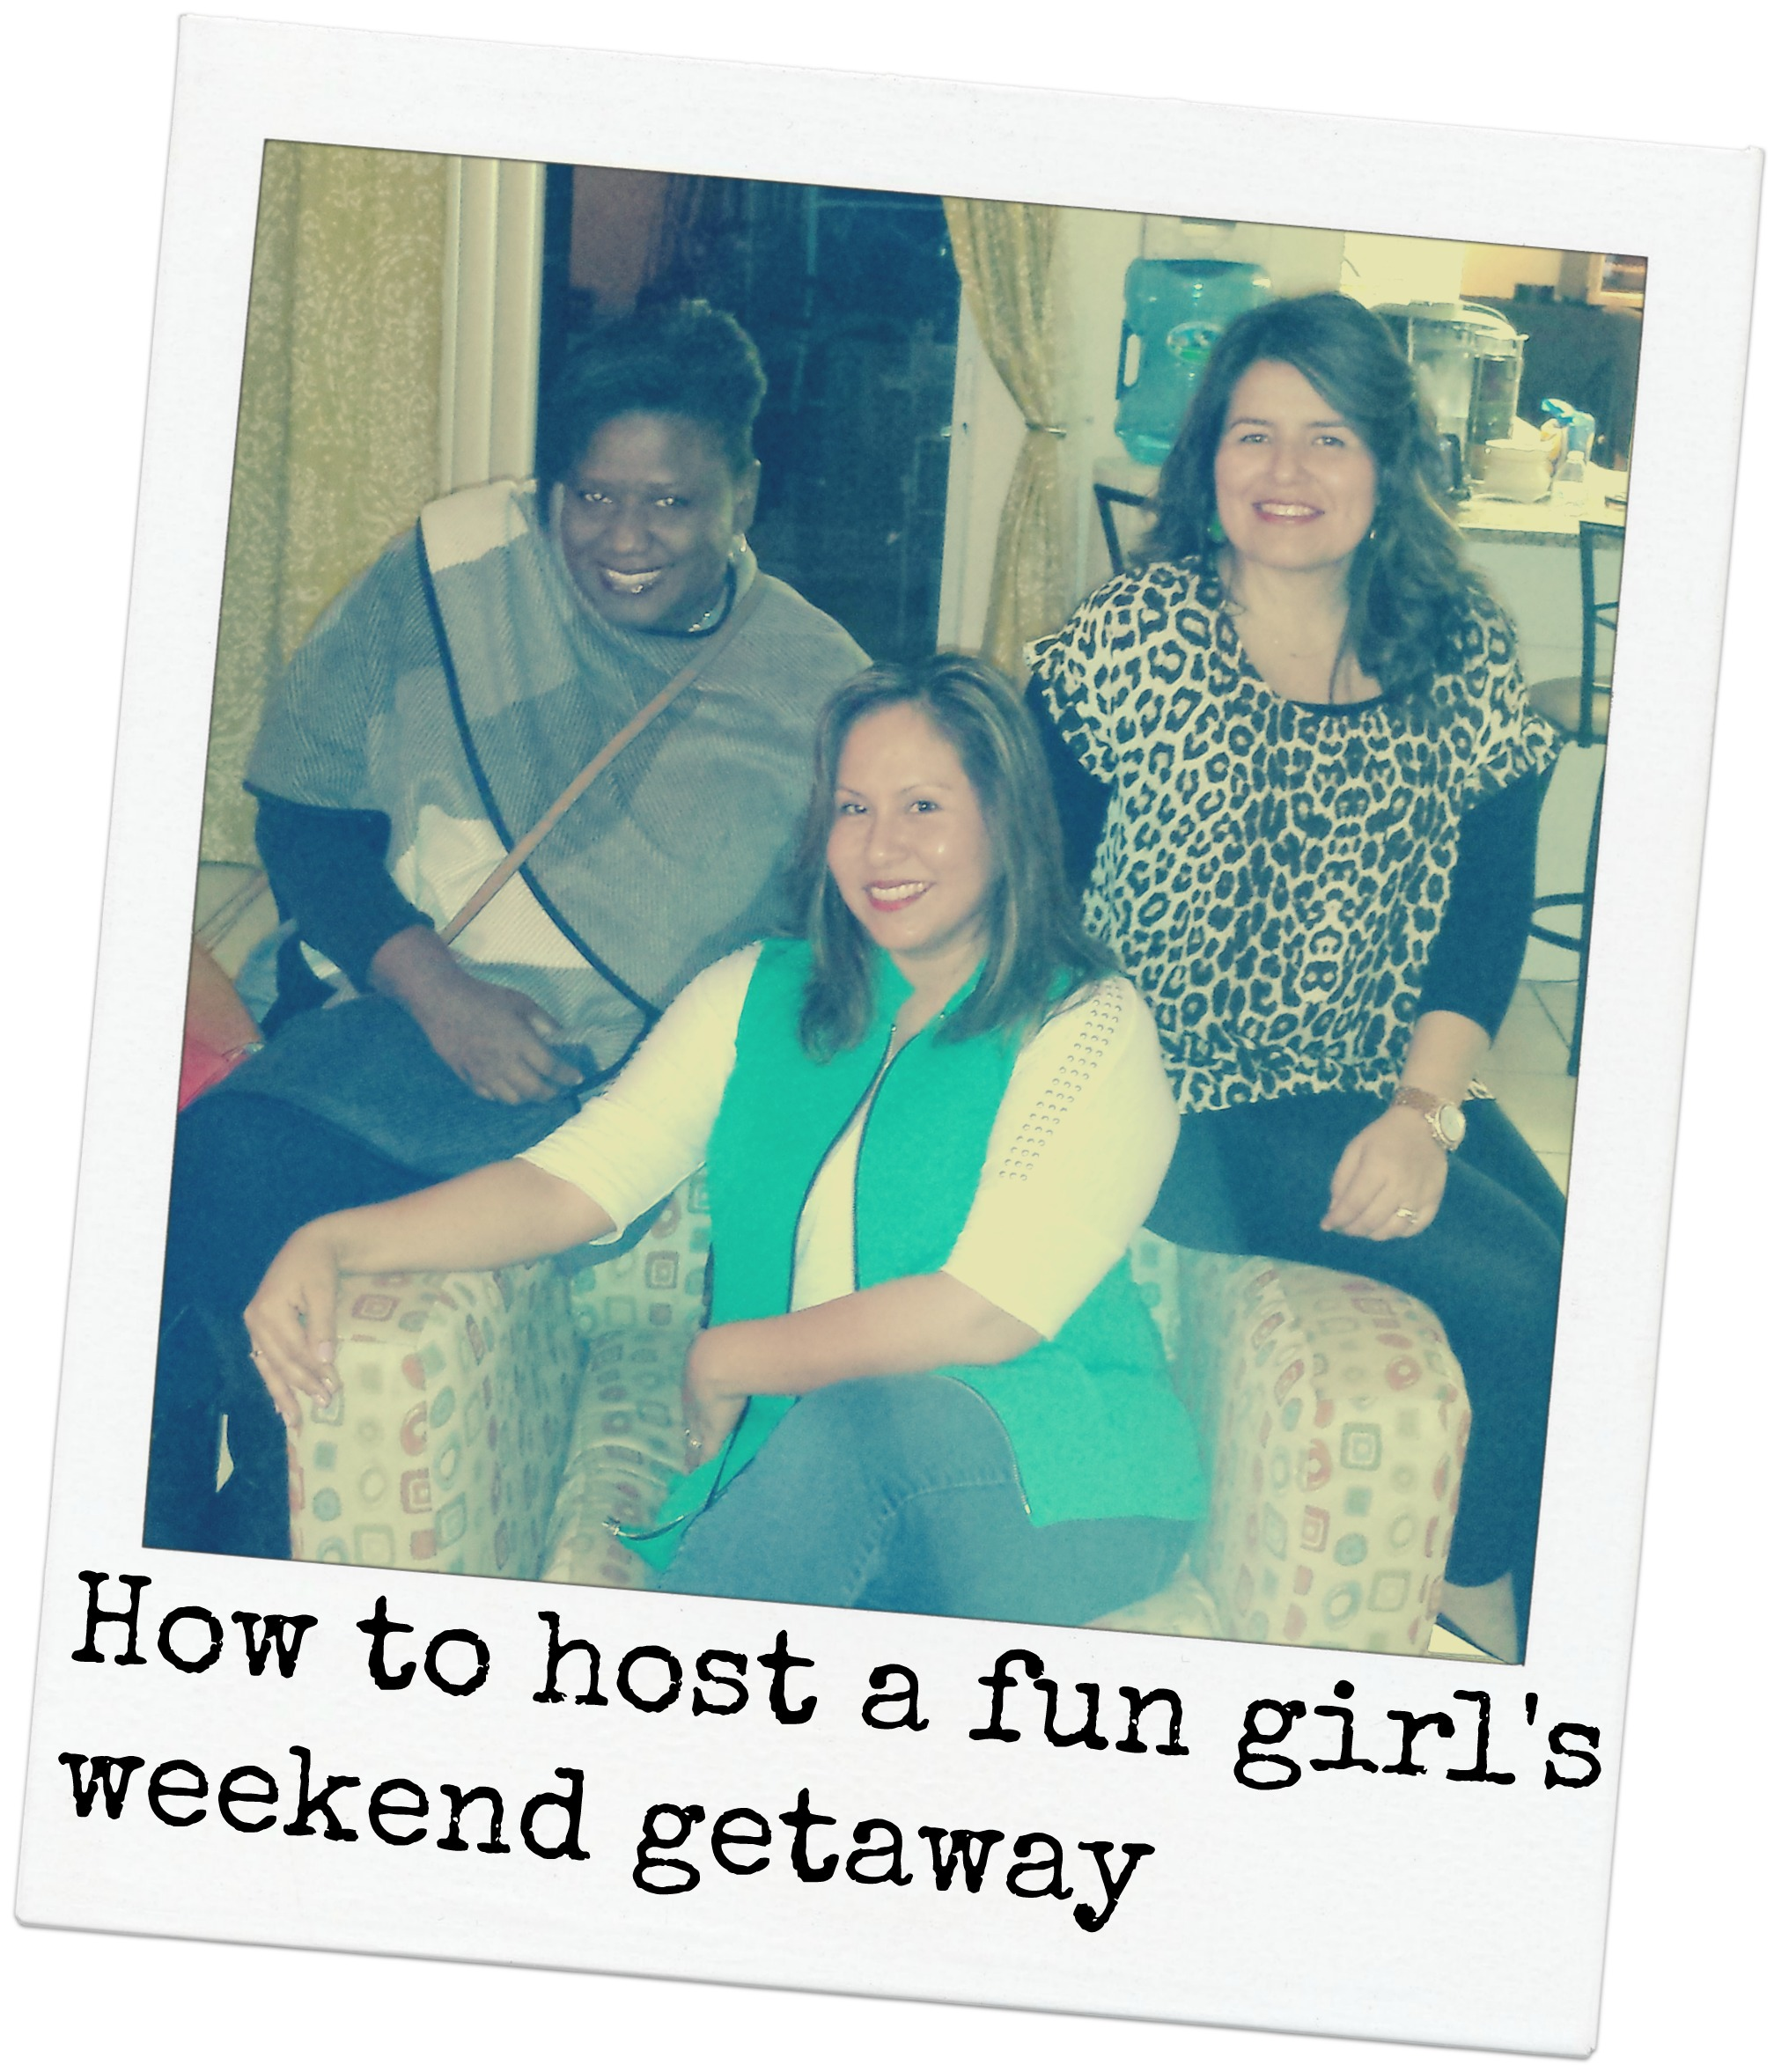 How to host a fun girl's weekend getaway